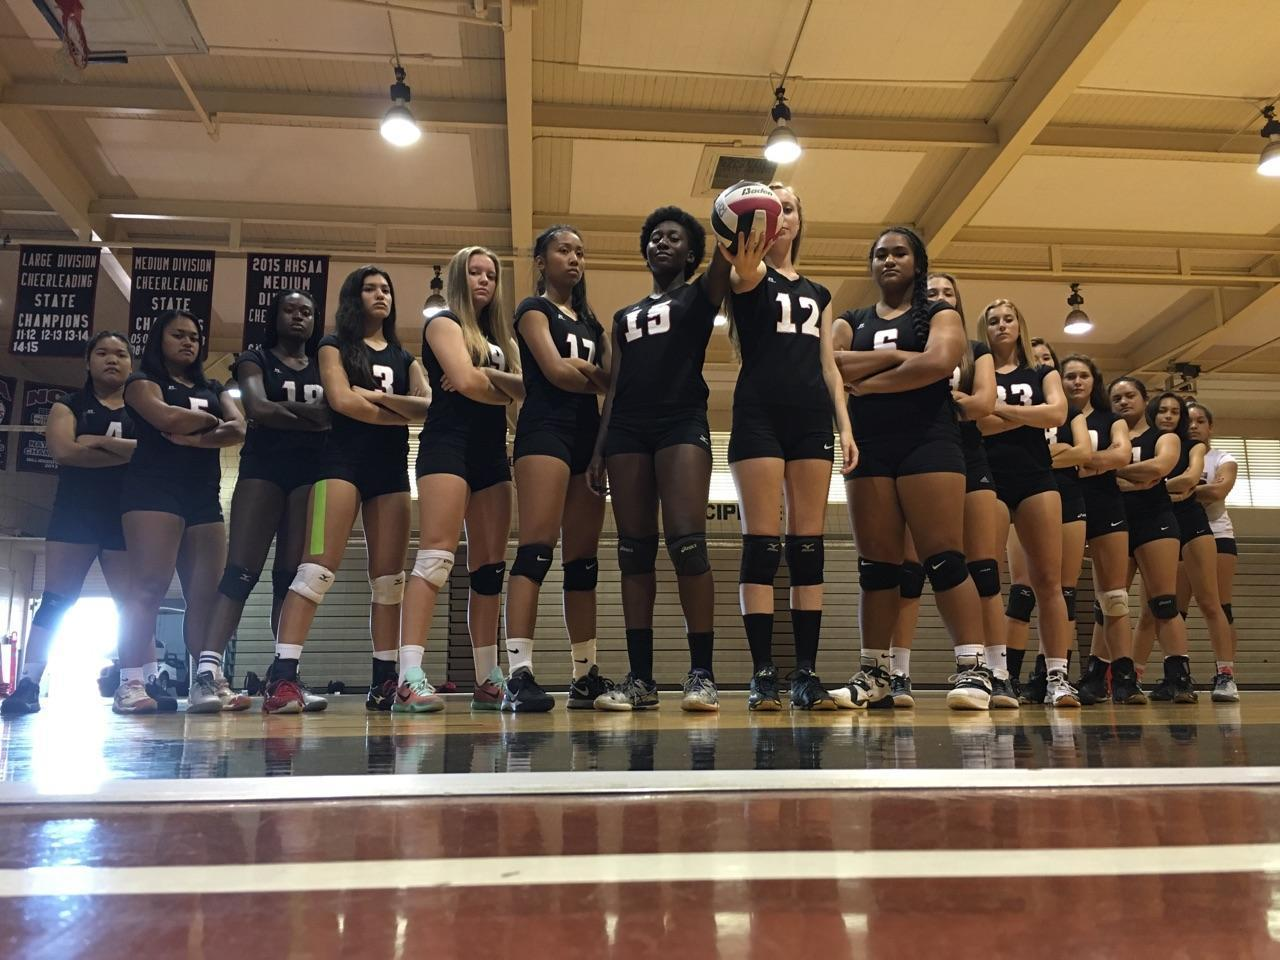 "Lady Rams Volleyball hosts 4 wins and 6 losses after playing Campbell, Waianae, Aiea, Nanakuli, Waipahu, Waialua, Mililani, Kapolei, Pearl City, and Leilehua. Coach Candice Fujiwara recognizes her team's talent and is working with her players to bring their skills to the court.  ""They are so talented and is probably the most talented team I've coached in my 11 years here at Radford, but they need to believe they are talented,"